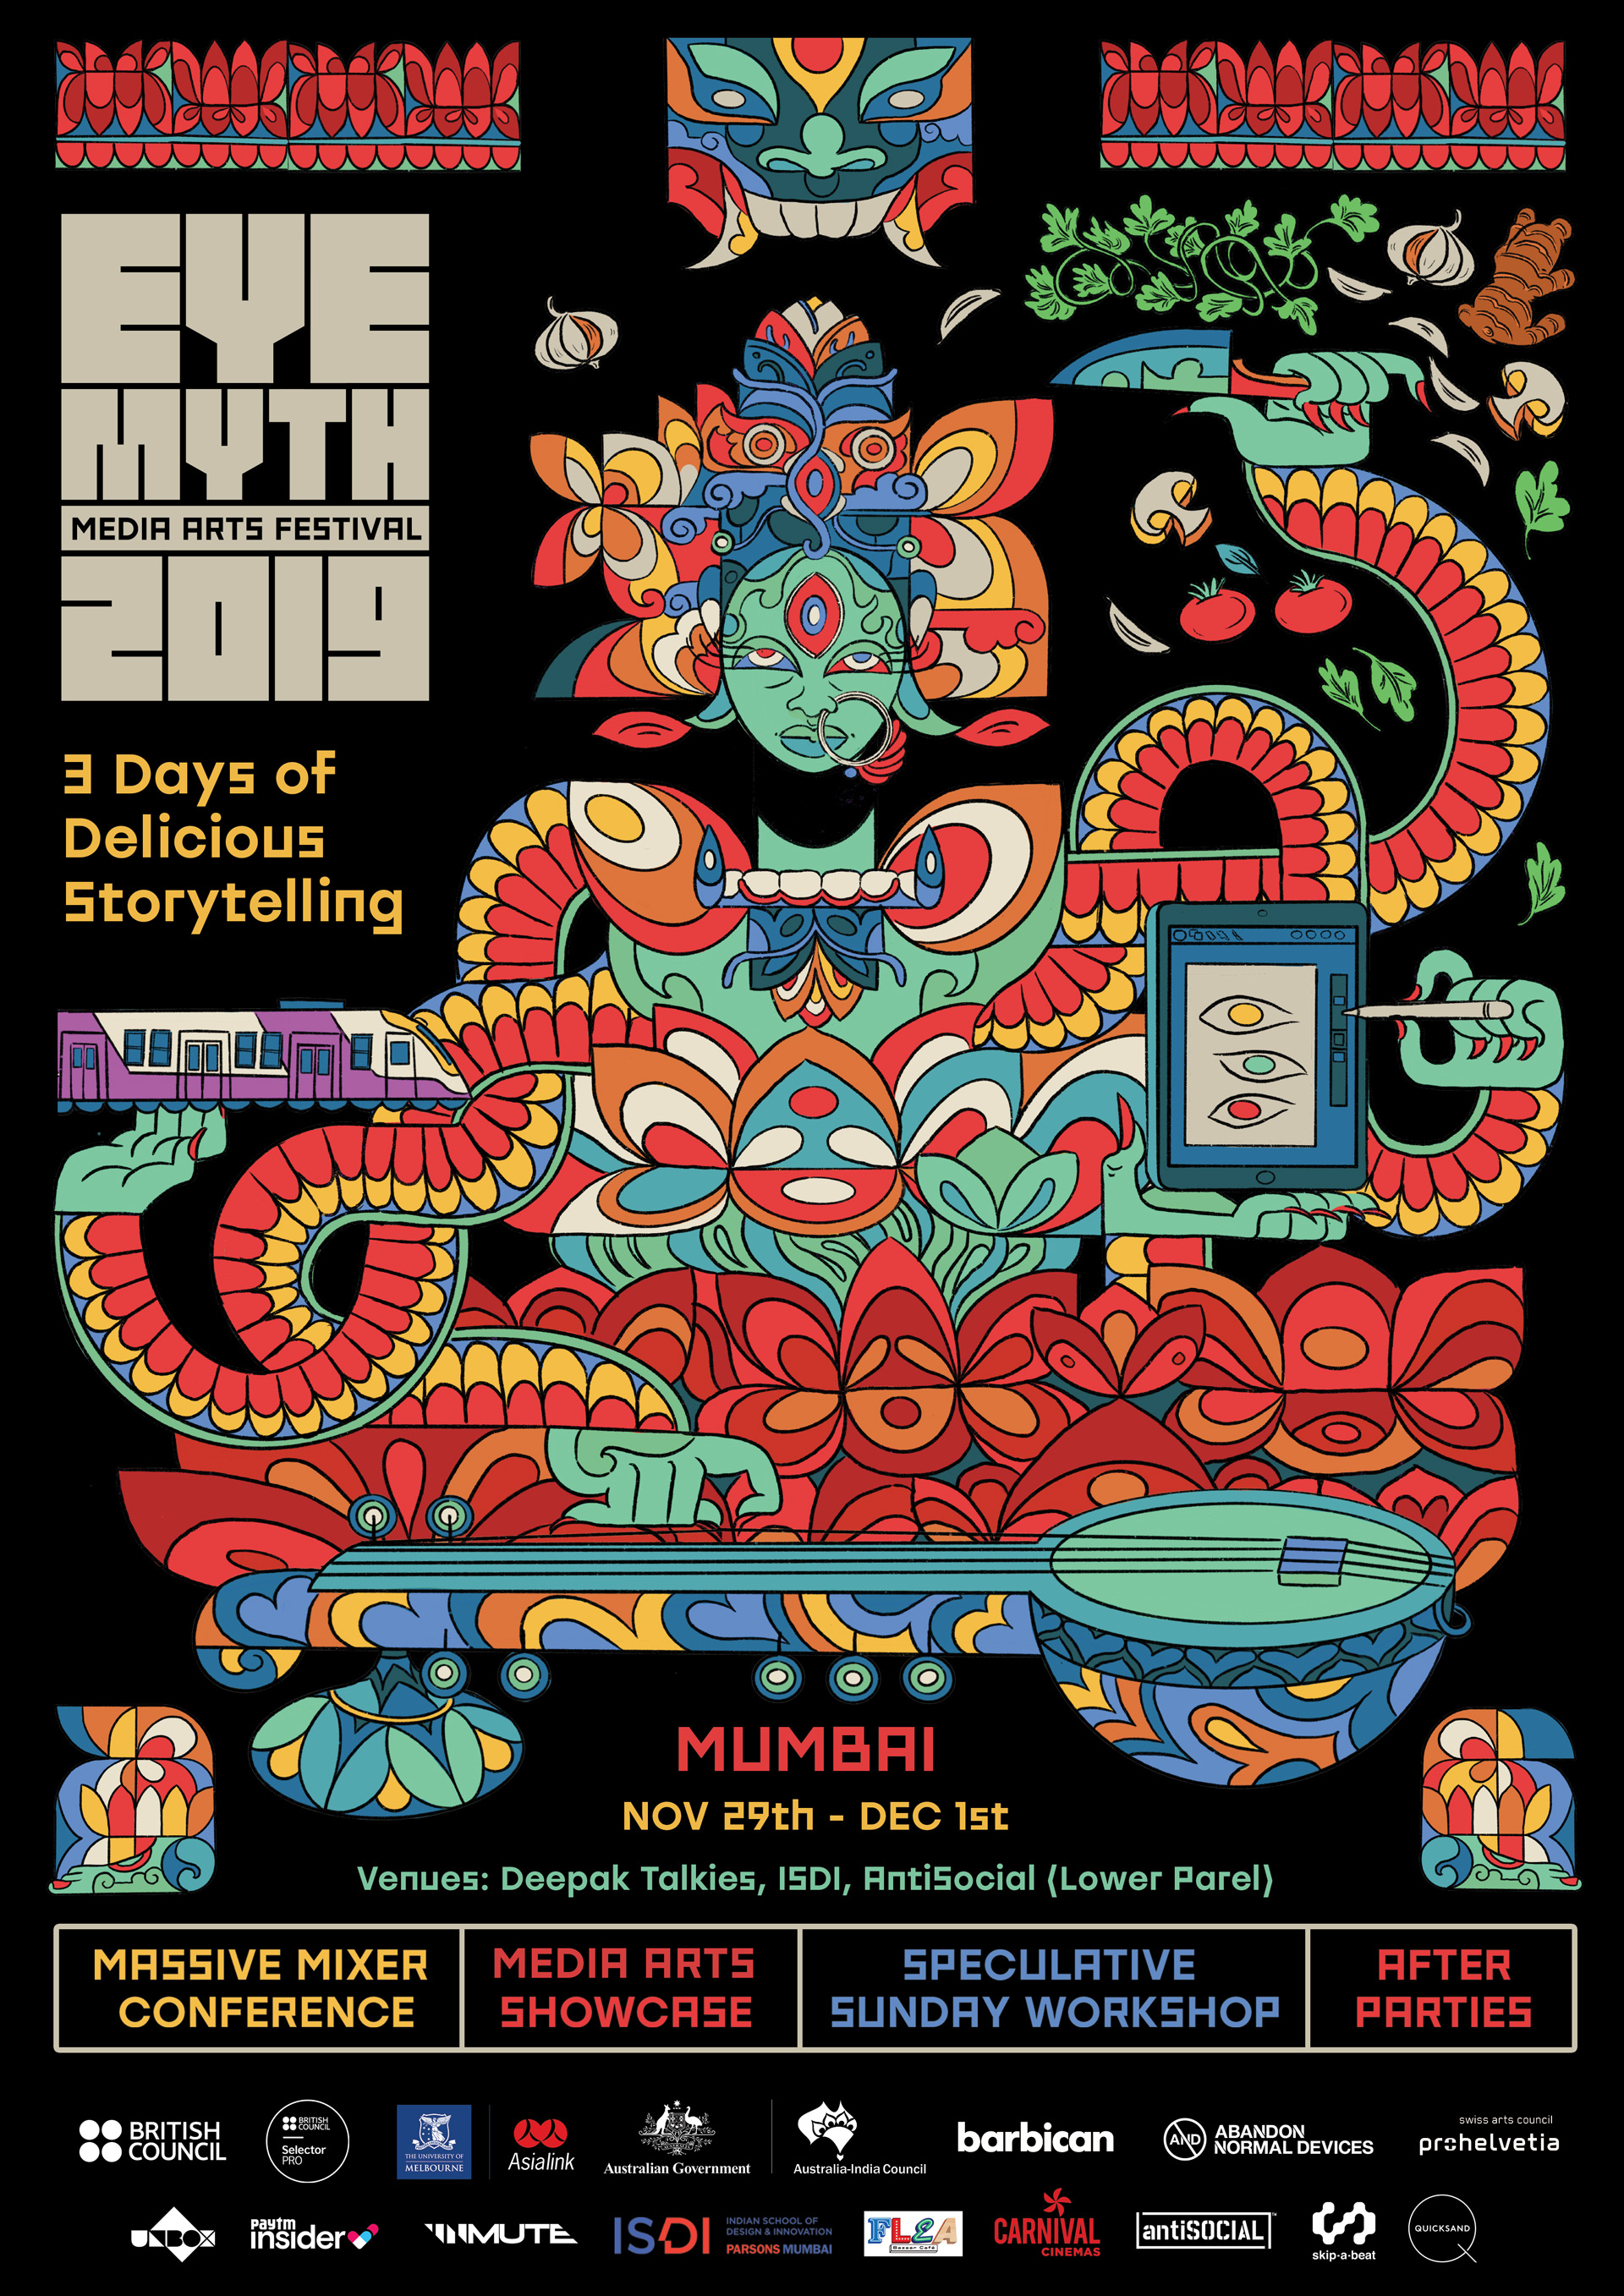 Official poster for EyeMyth Media Arts Festival 2019 | EyeMyth Media Arts Festival | STIRworld